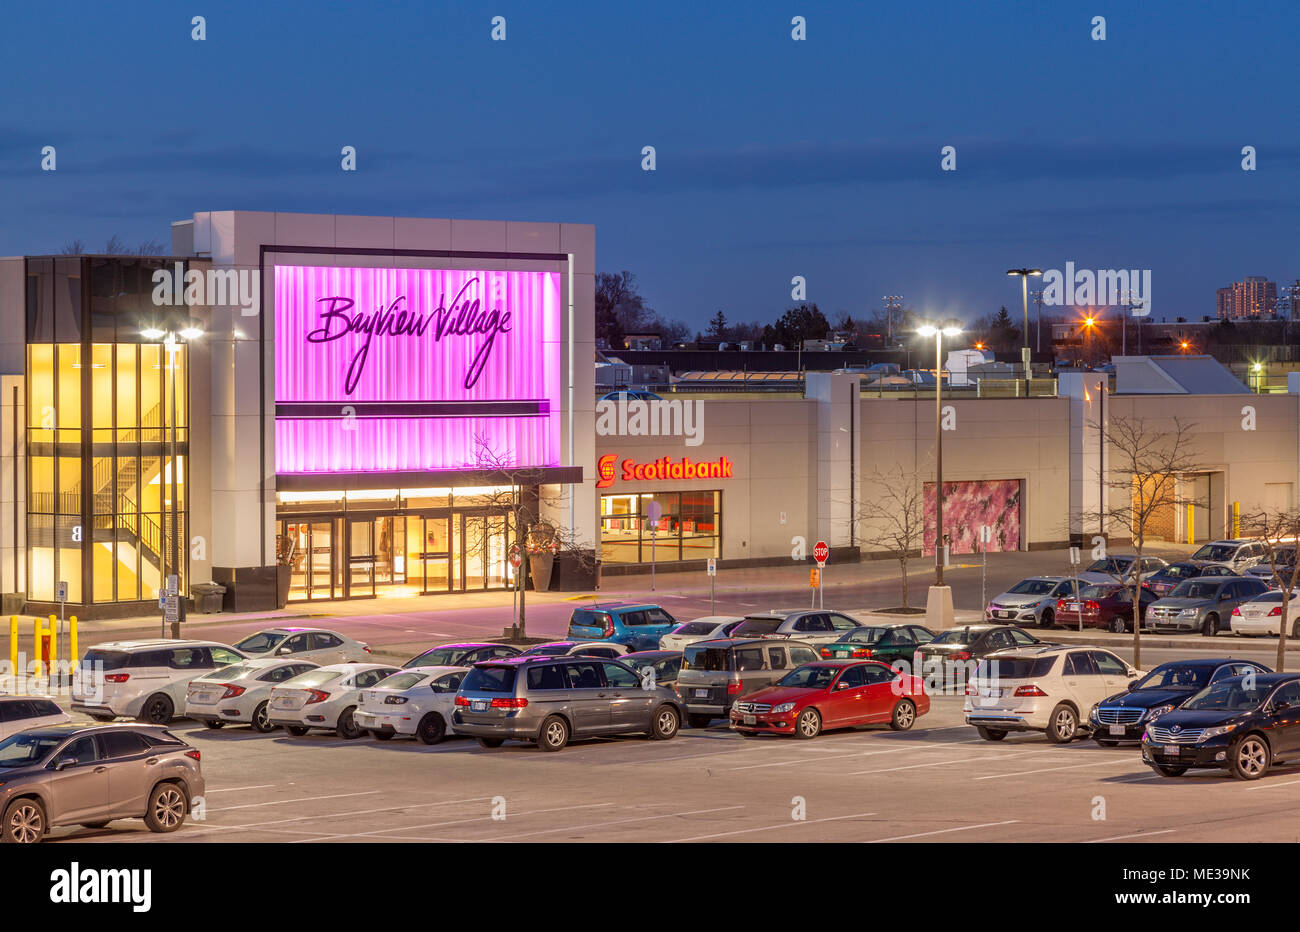 Bayview village shopping center